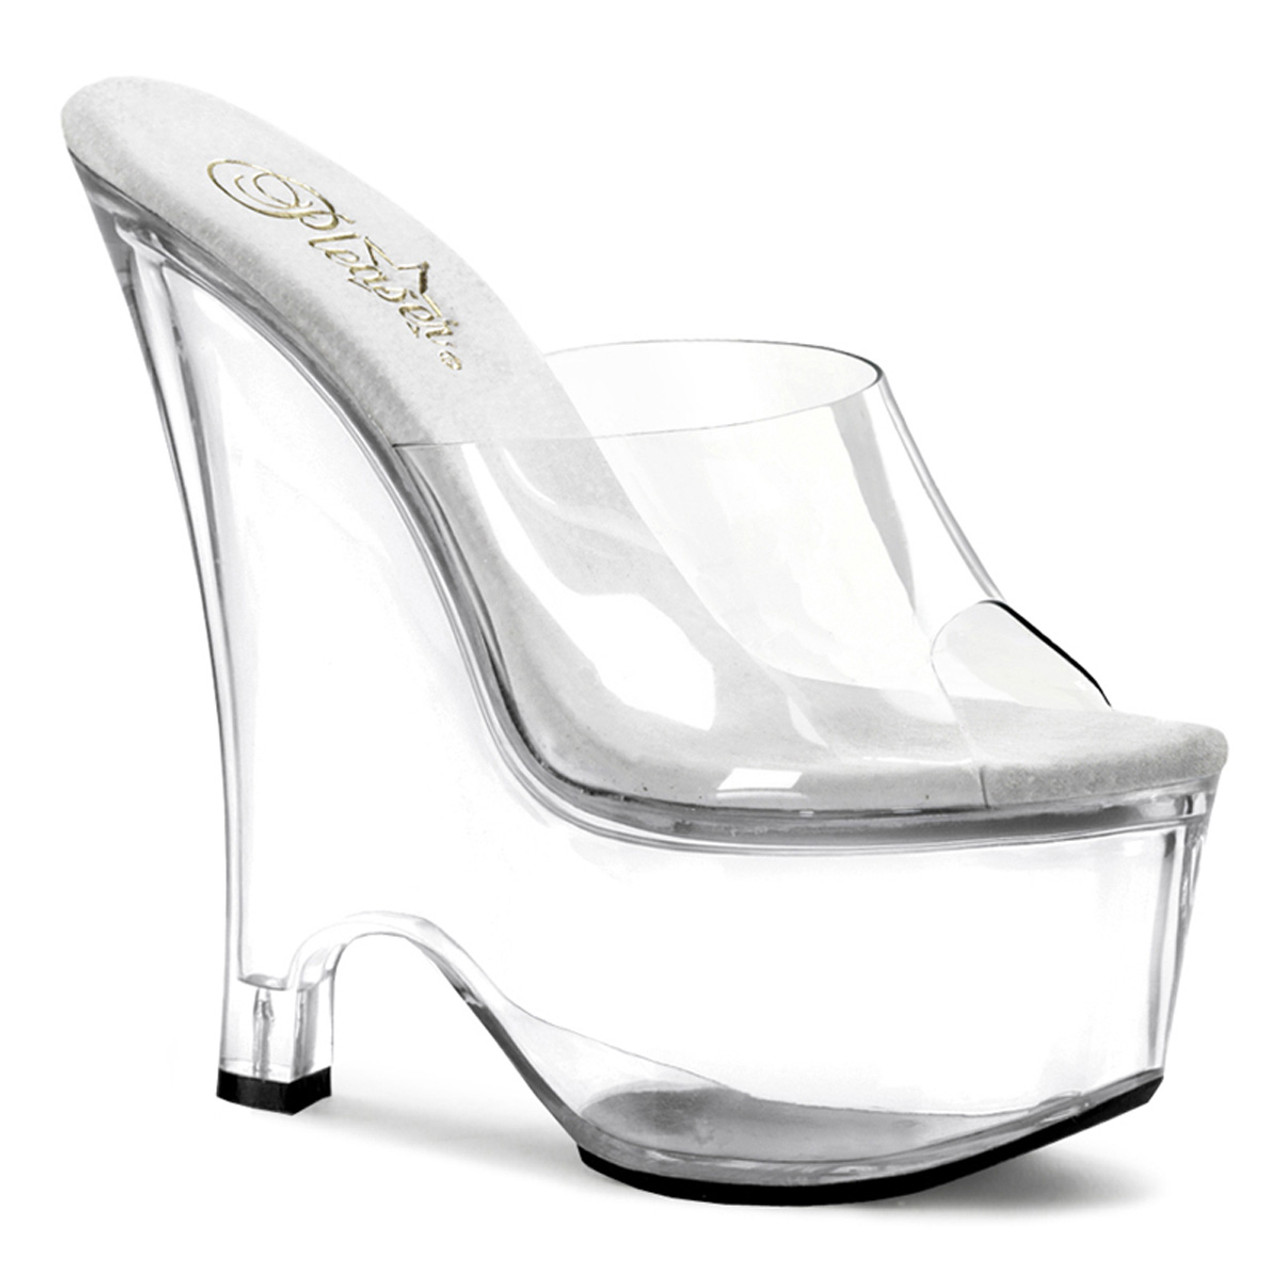 """Women's sexy clear stripper pumps with 6.5"""" high heel."""